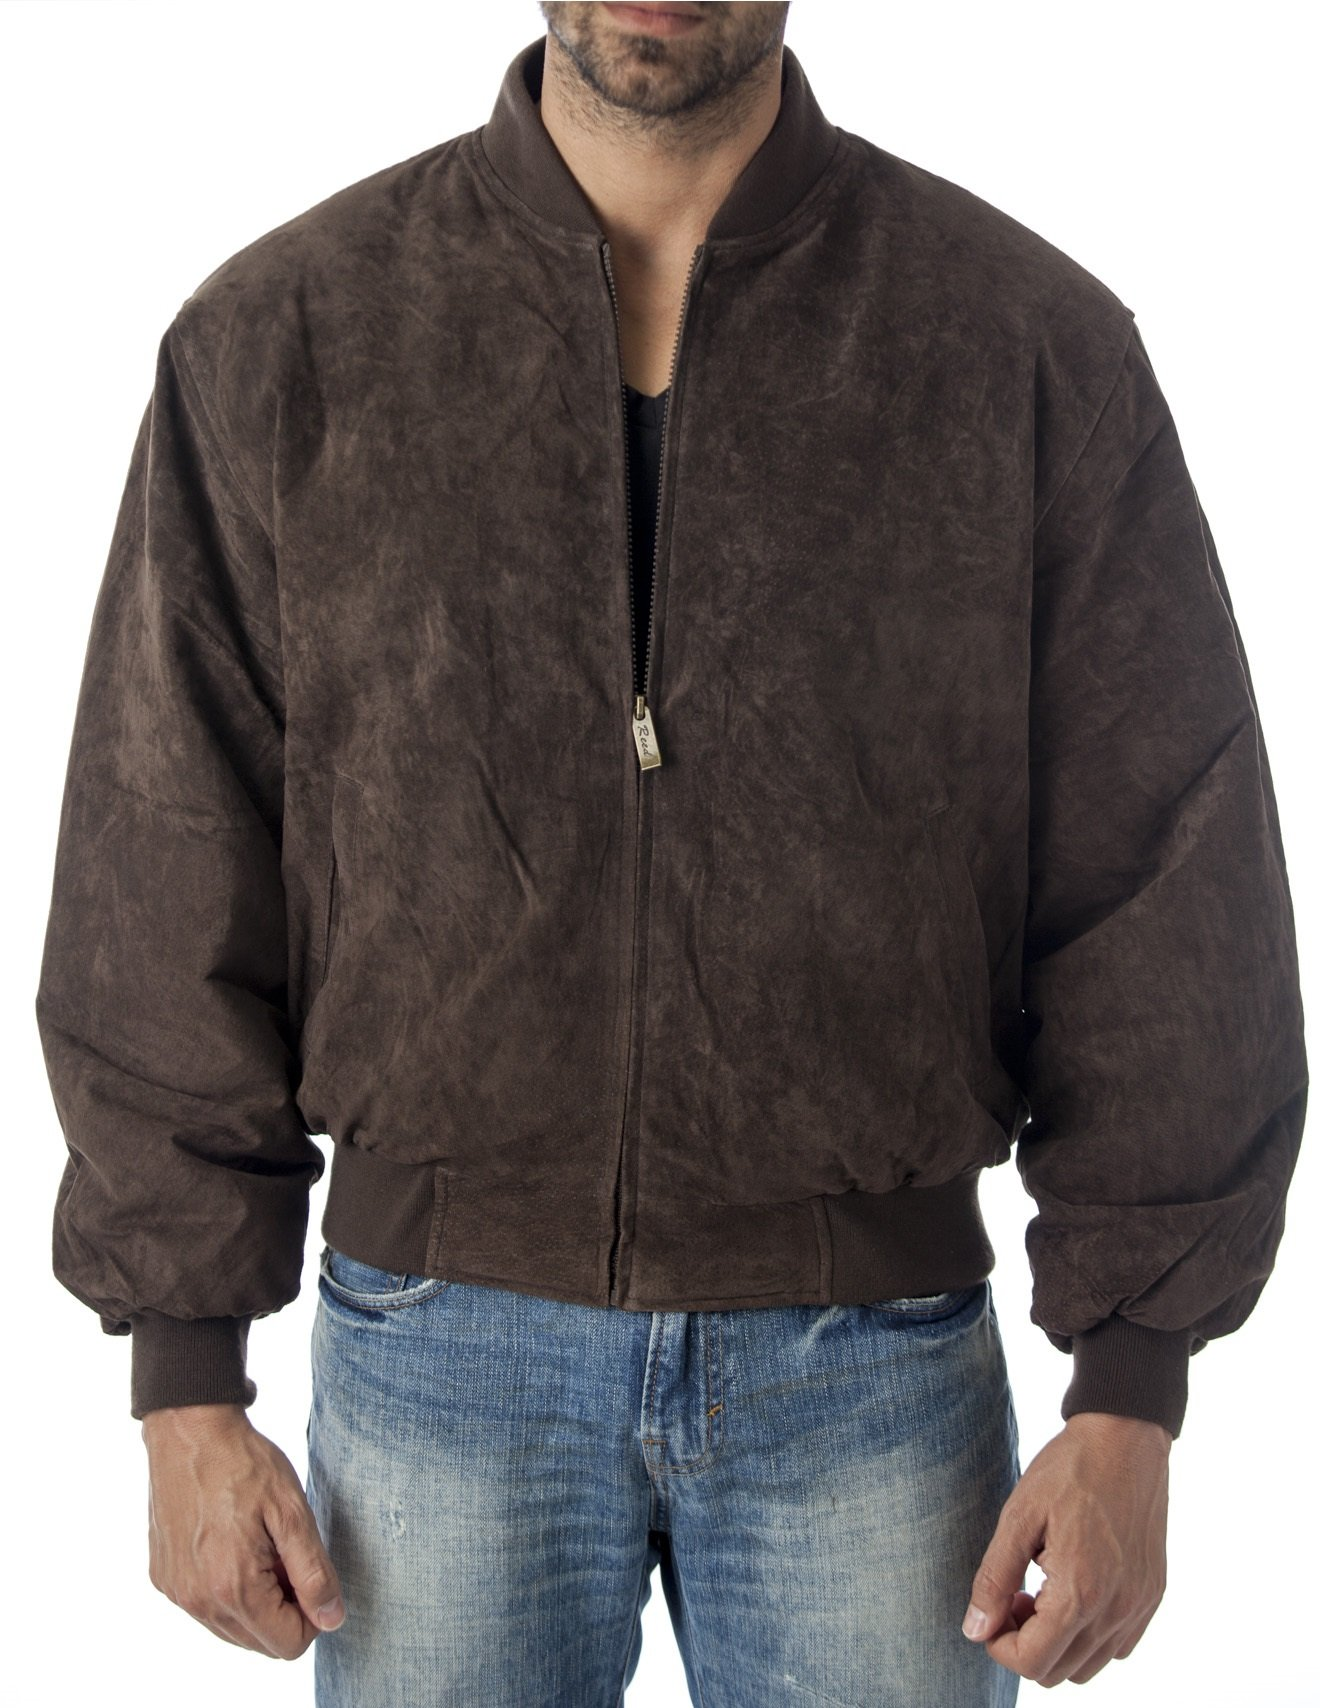 REED Baseball Leather Jacket EST. 1950 (Imported) (Large, Brown) by REED